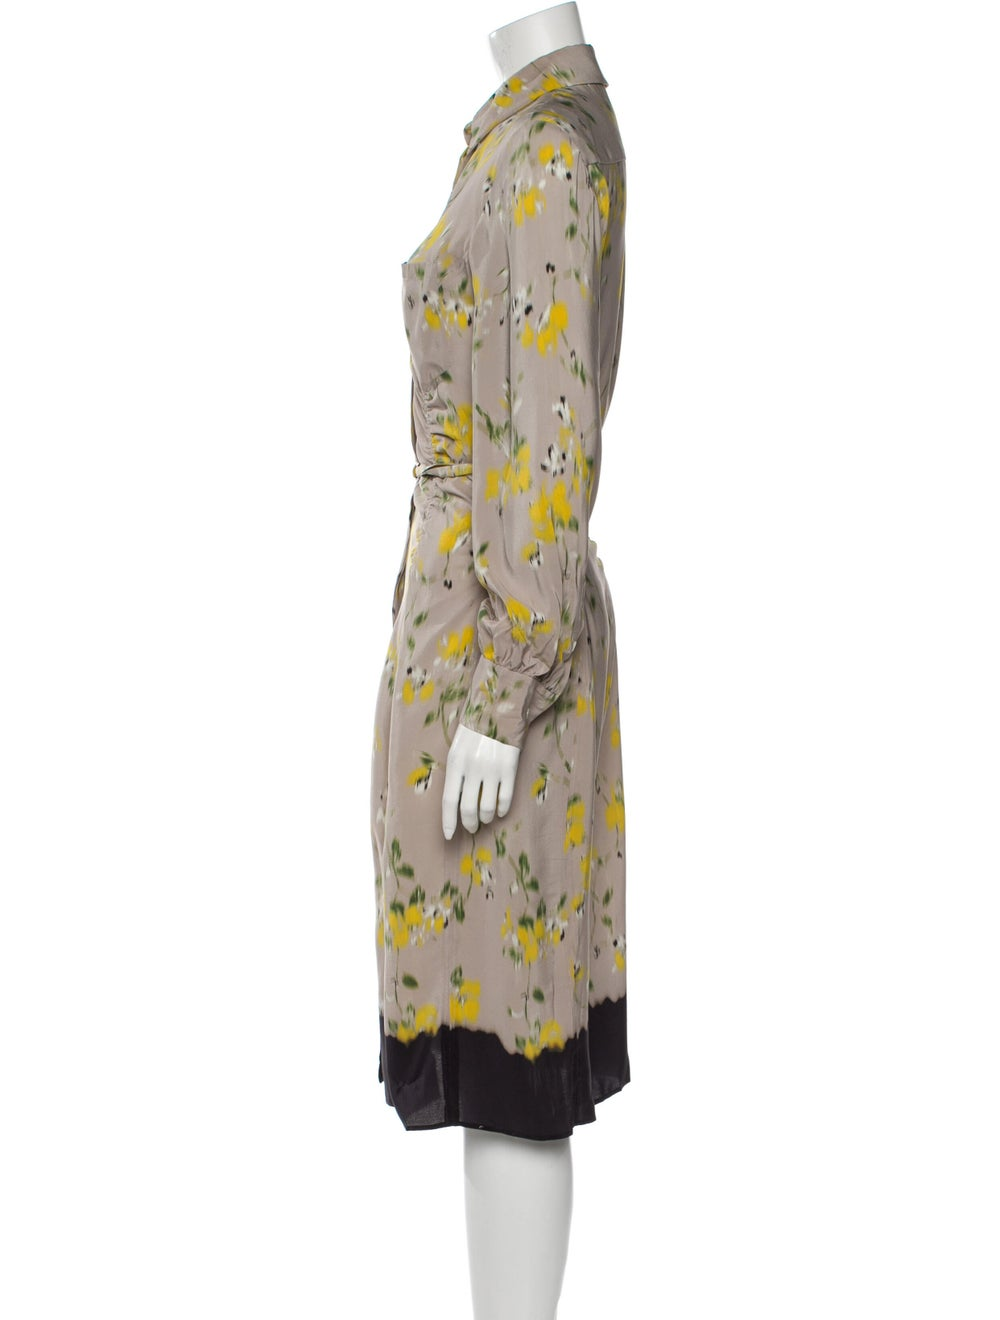 Altuzarra Silk Midi Length Dress - image 2